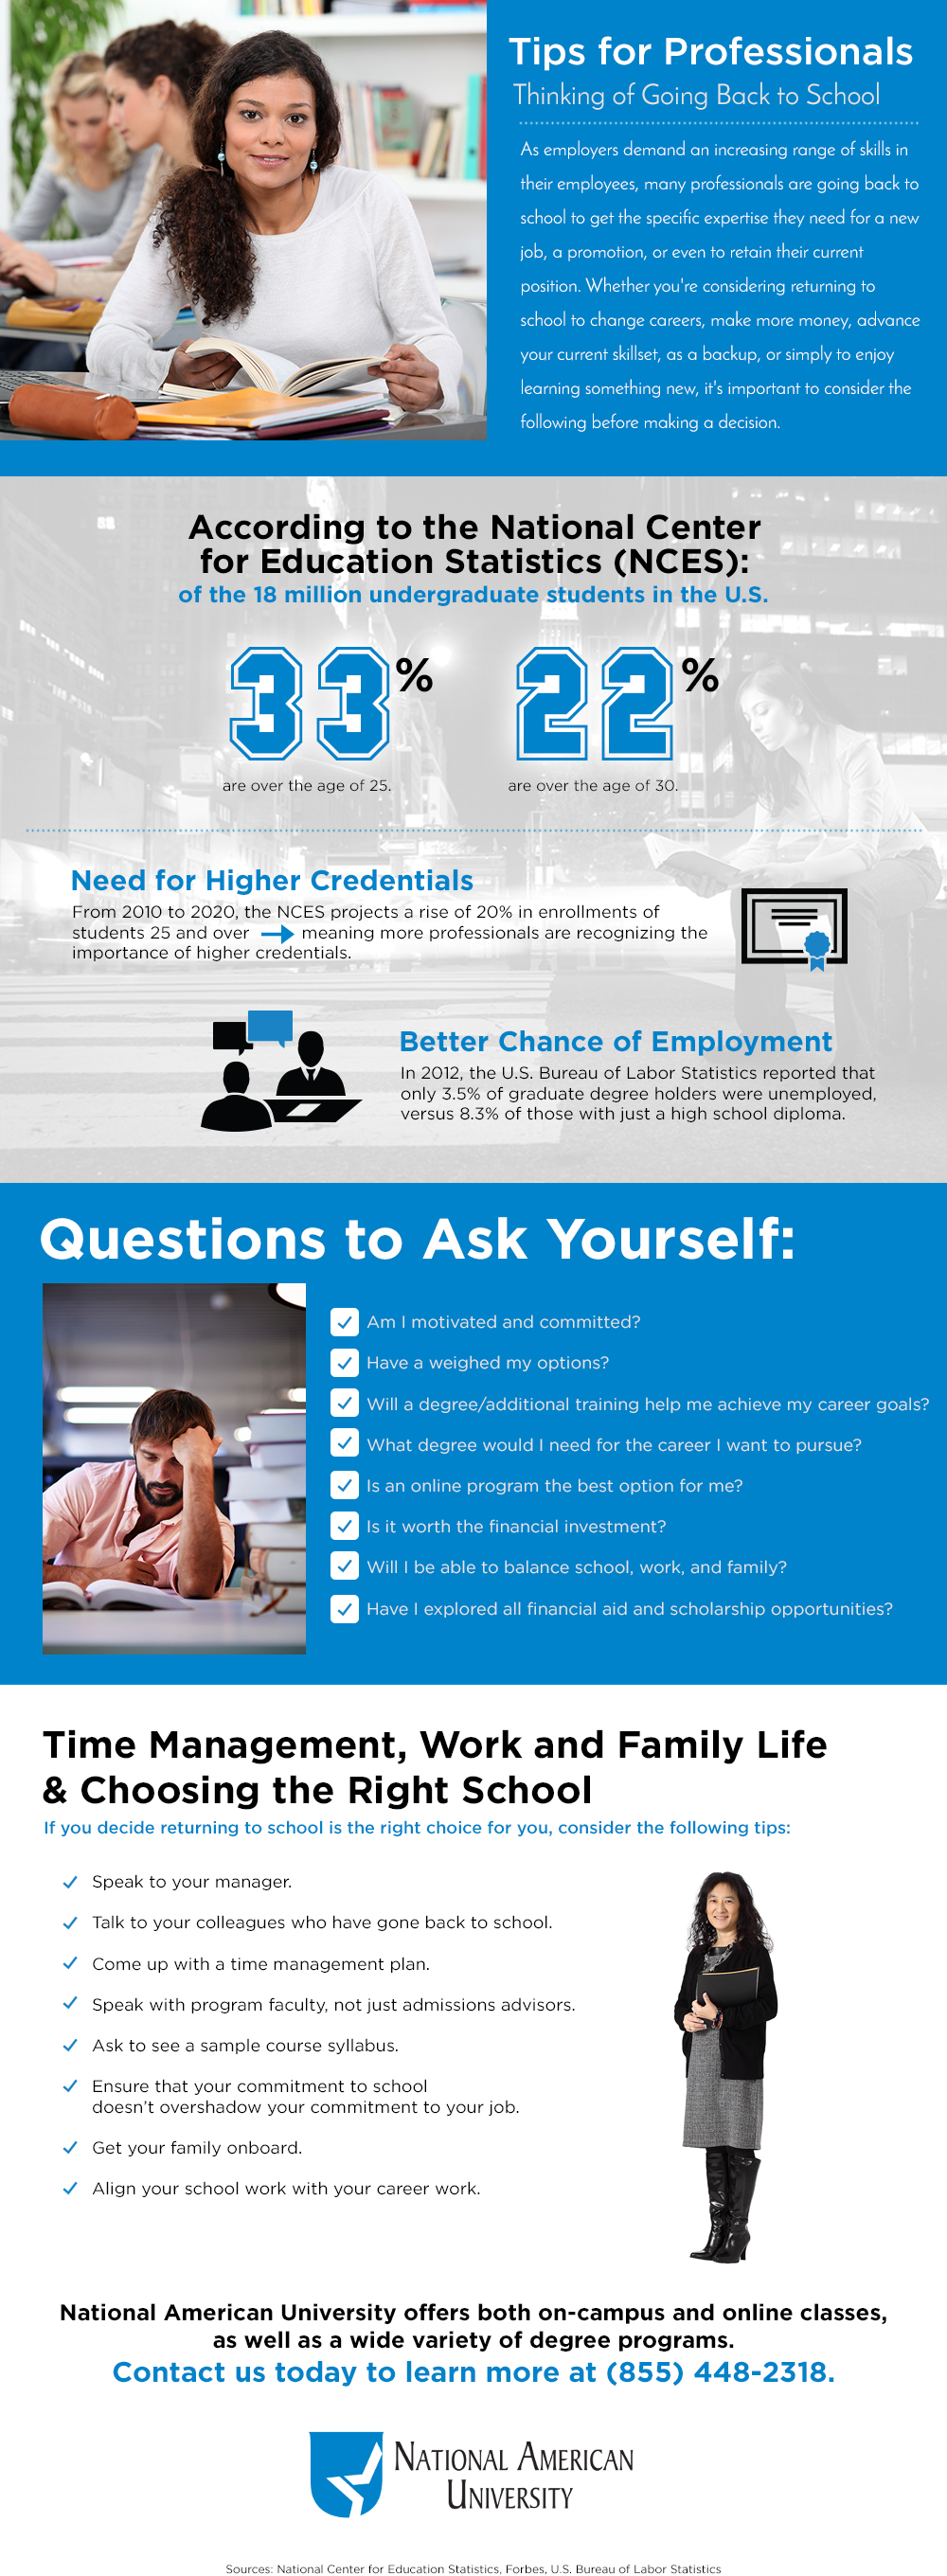 NationalEDU_Infographic_Tips-for-Professionals-Thinking-of-Going-Back-to-School